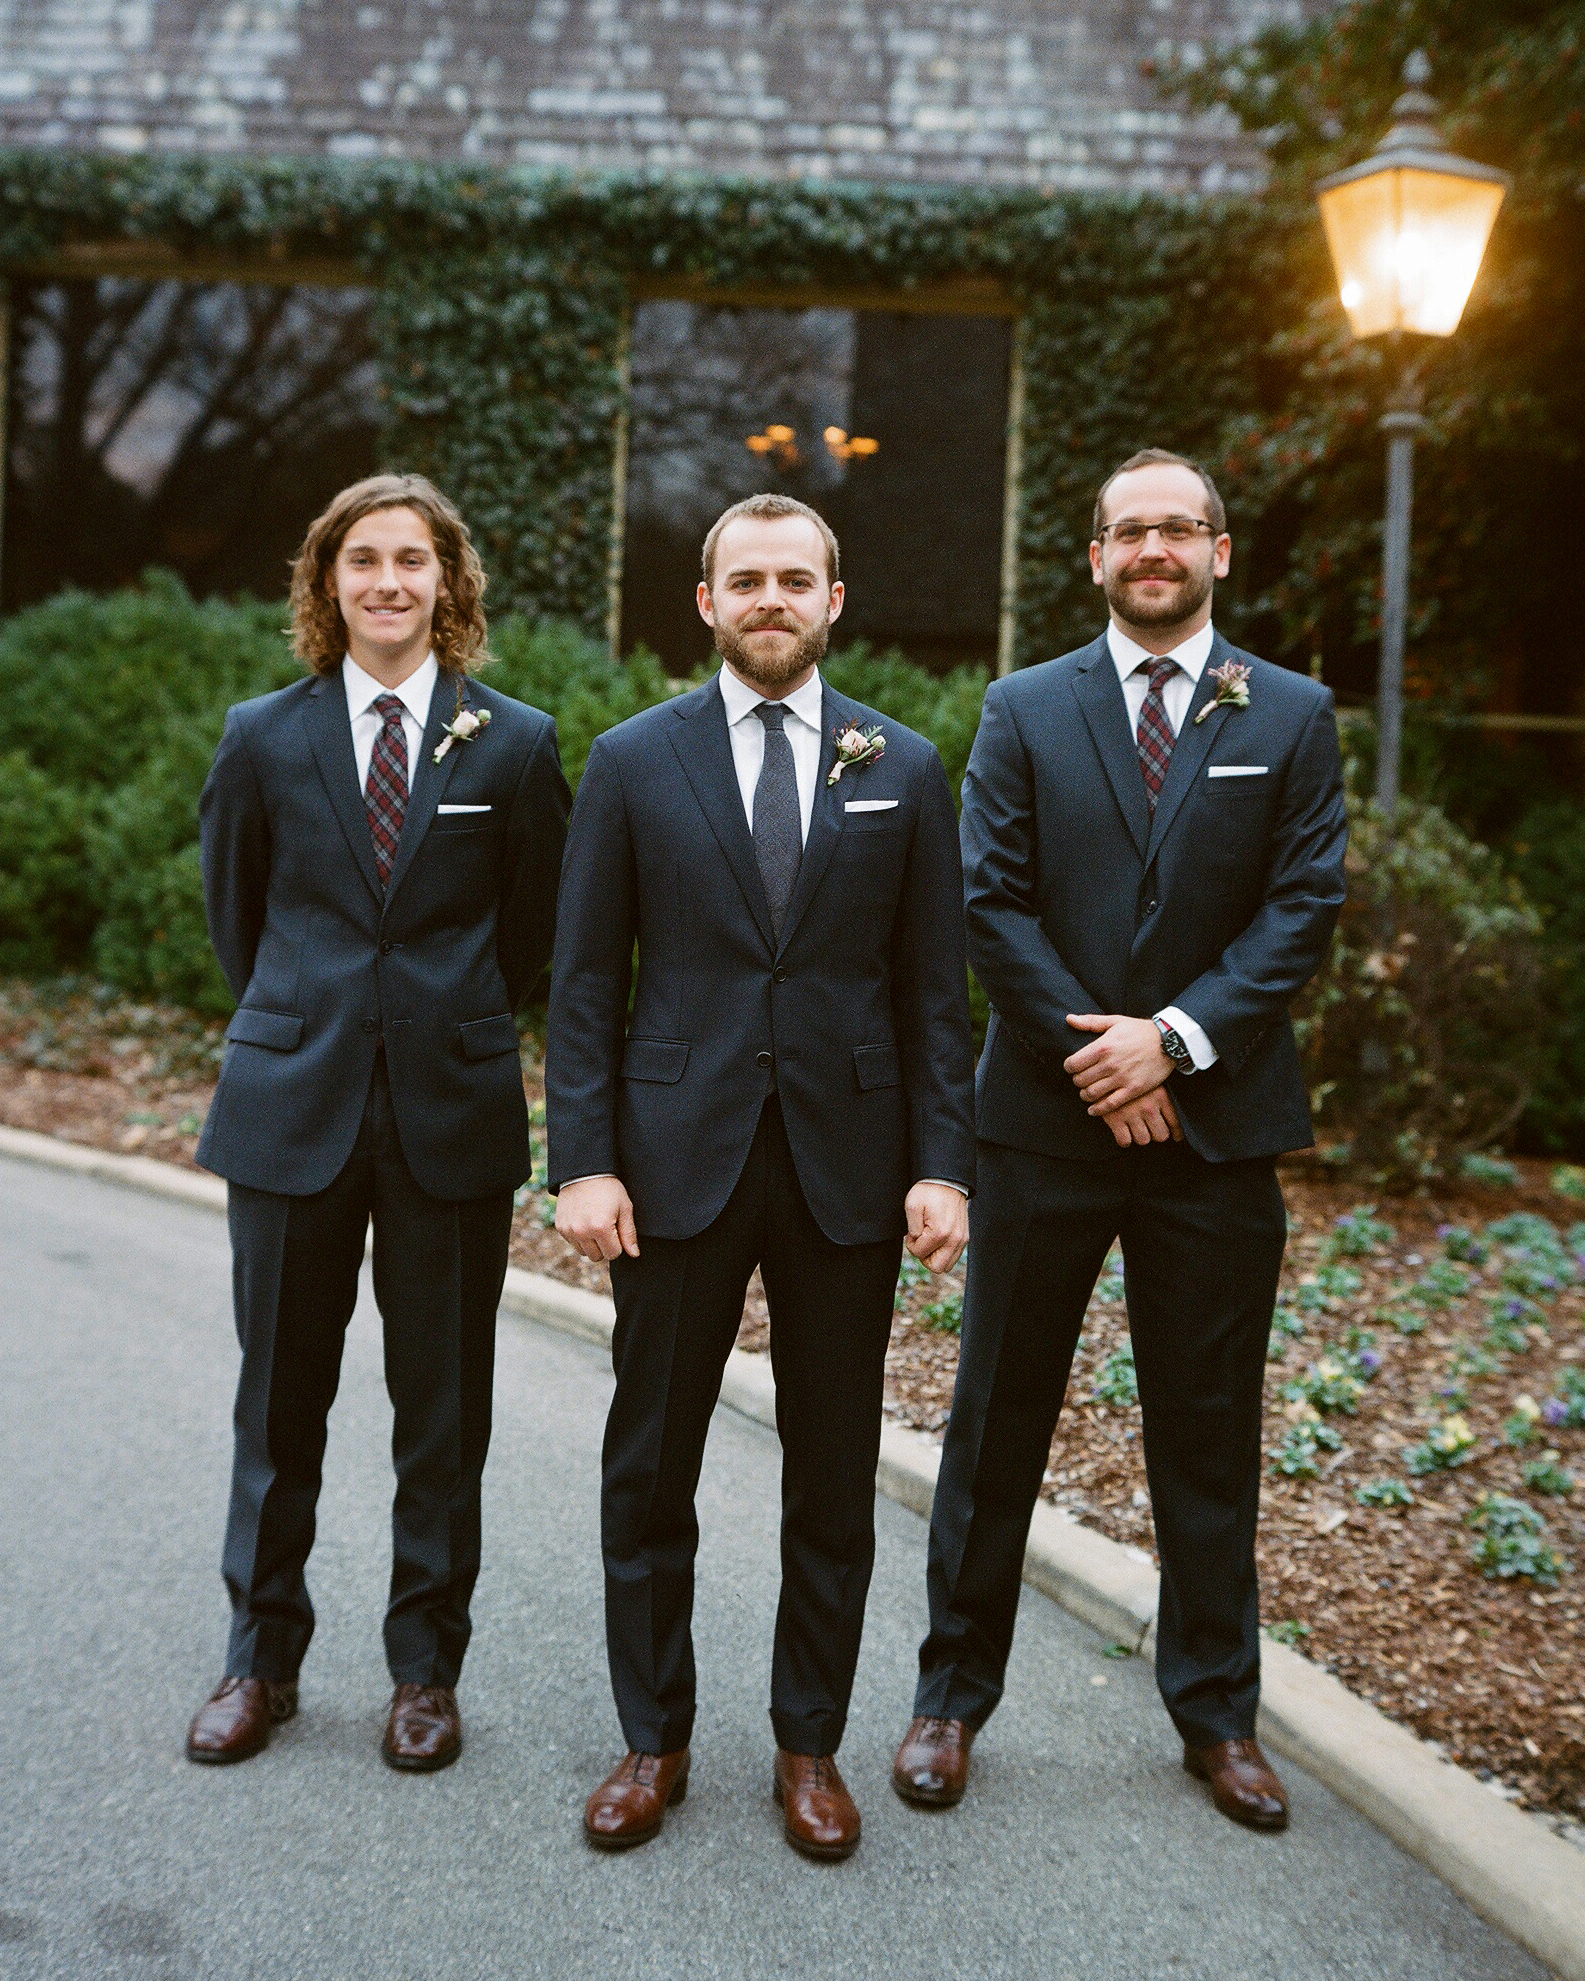 jane-ryan-wedding-groomsmen-128-s111352-0714.jpg